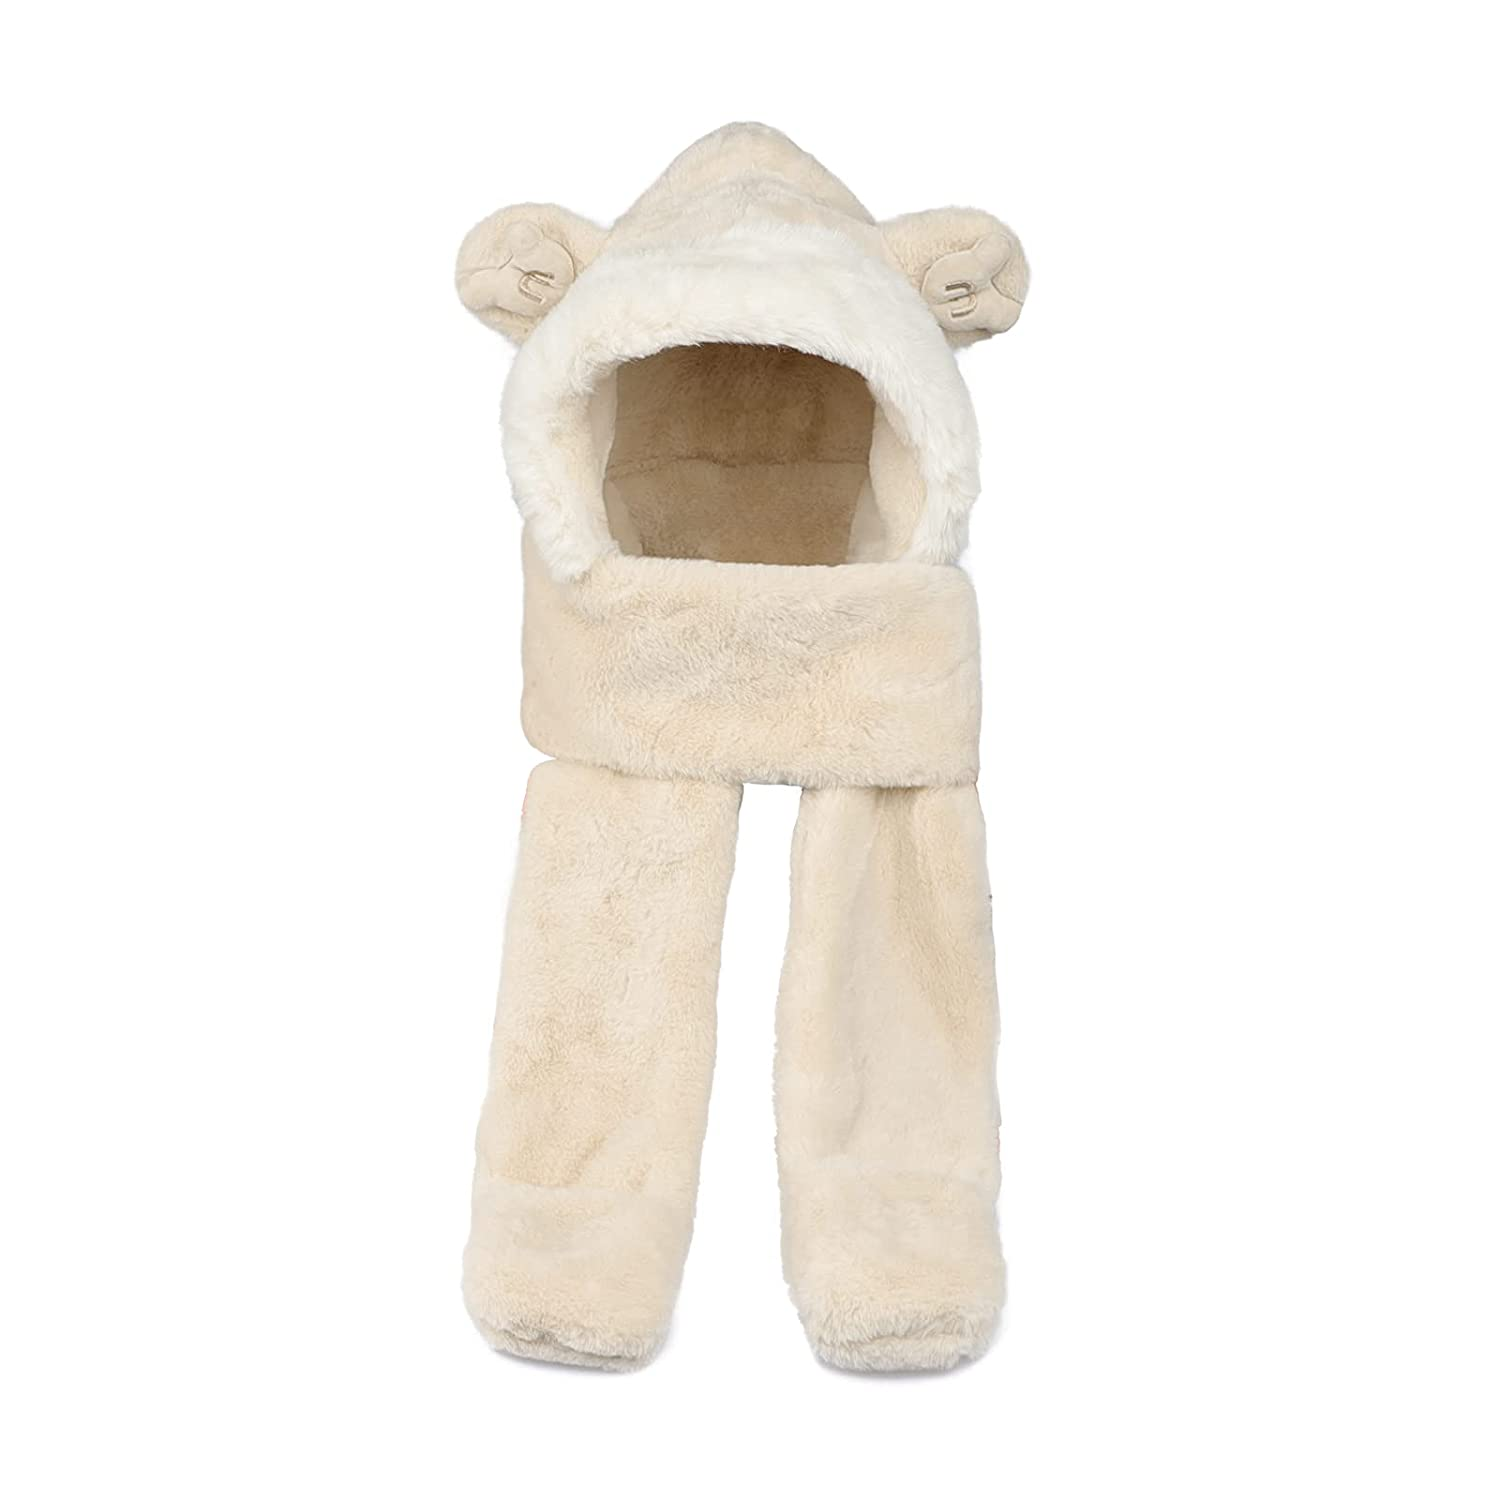 Kids Hat Scarf Gloves 3 in 1 Furry Thick Hooded Scarf with Mittens Cute Ski Cap Teens Plush Fluffy Winter Earflap Cap for Boys Girls Neck Warmer Gaiter Windproof Balaclavas Hat